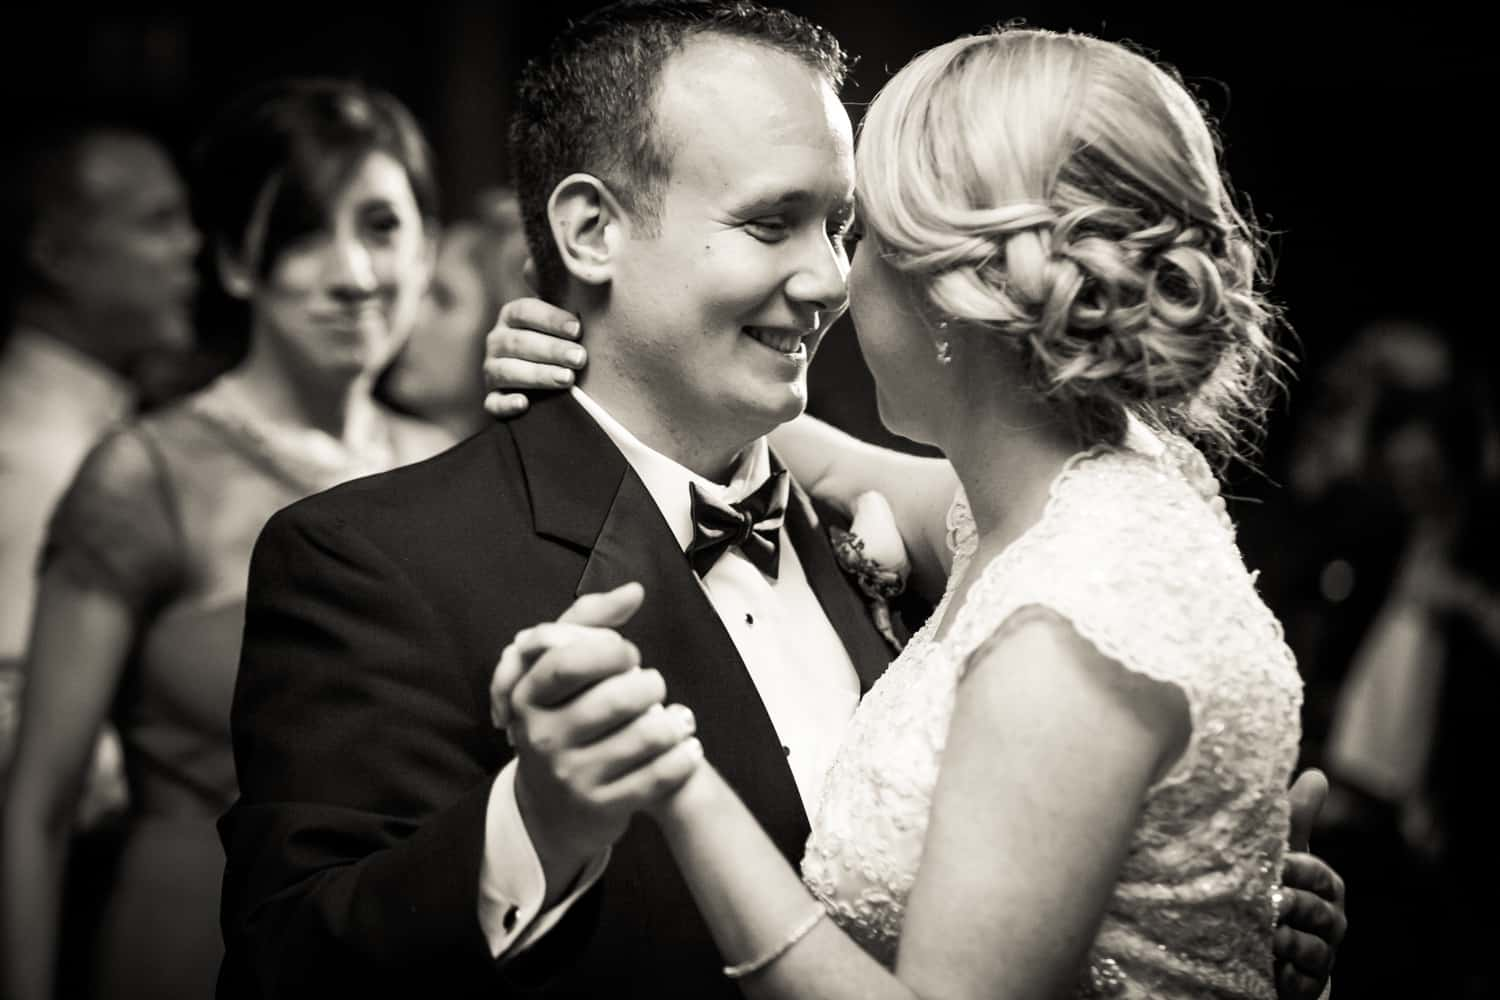 Black and white photo of bride and groom during first dance